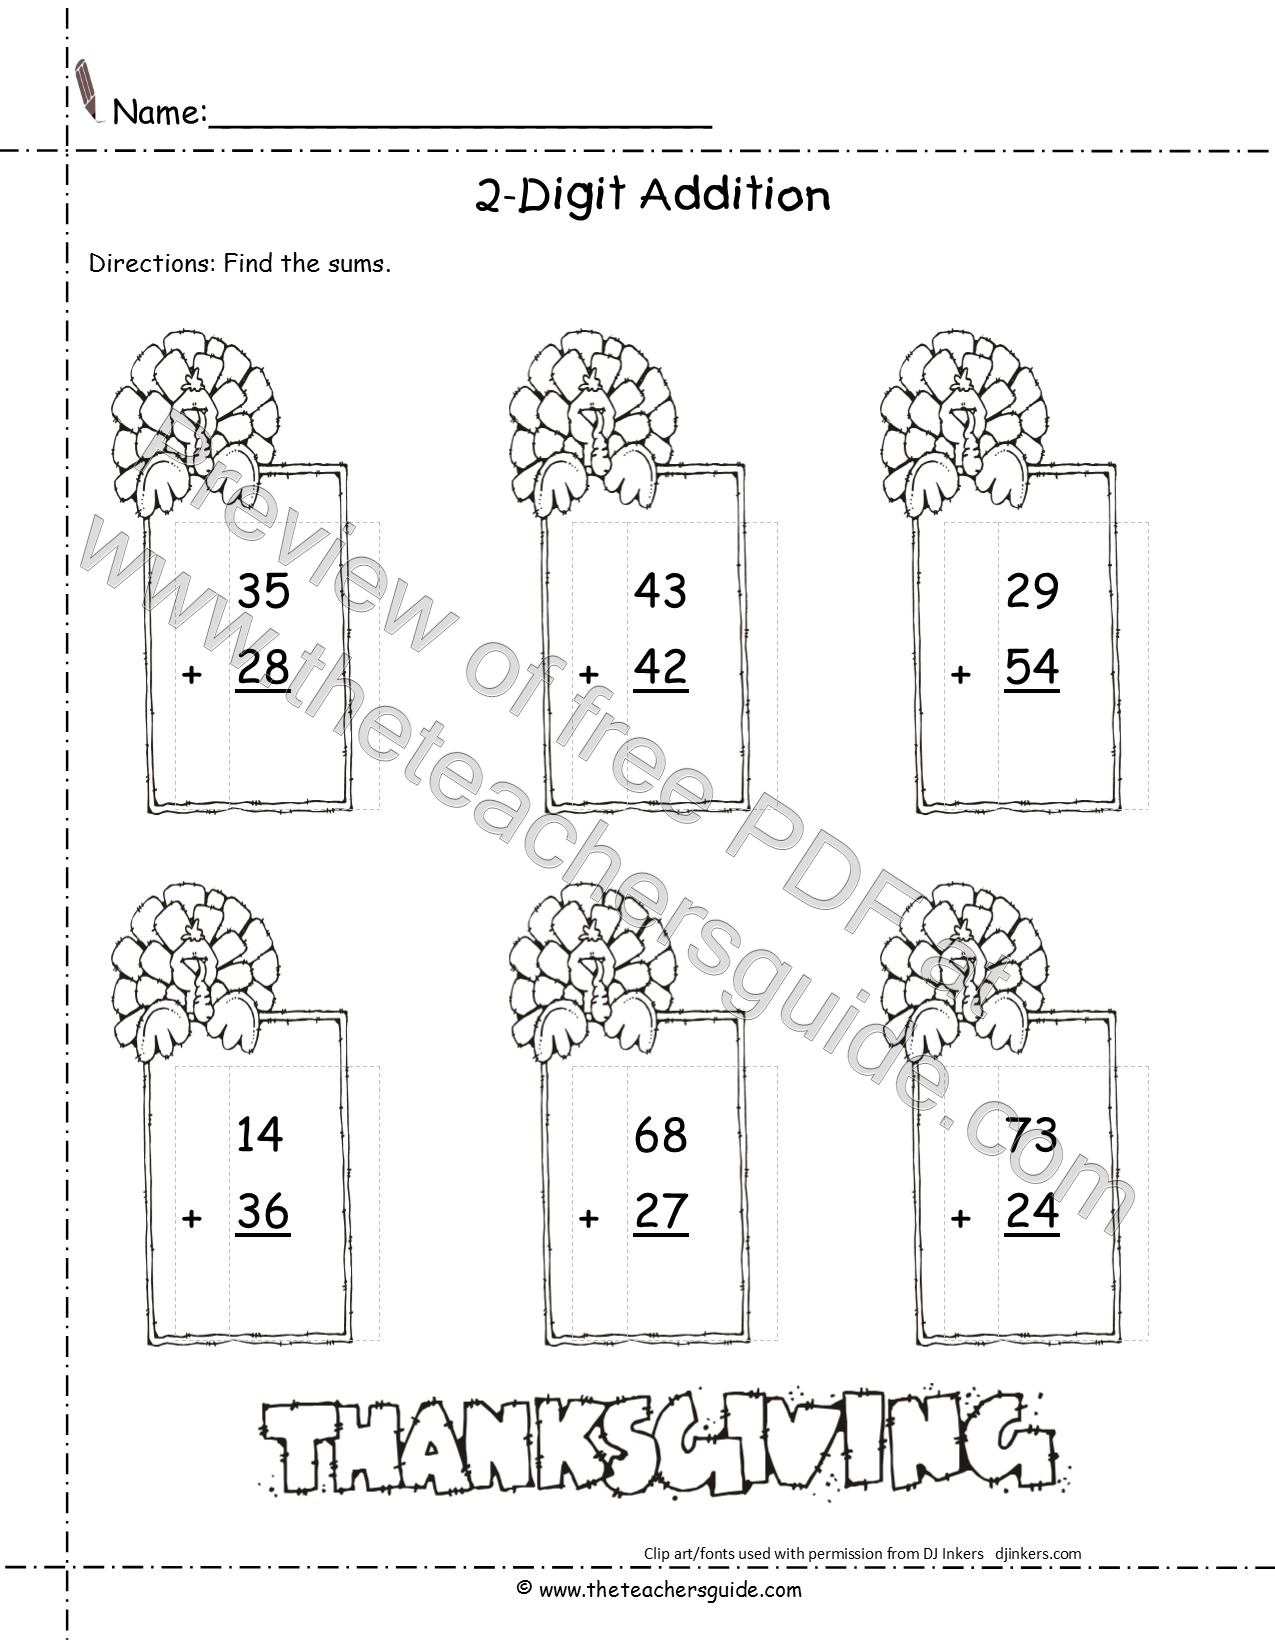 thanksgiving lesson plans themes printouts crafts. Black Bedroom Furniture Sets. Home Design Ideas